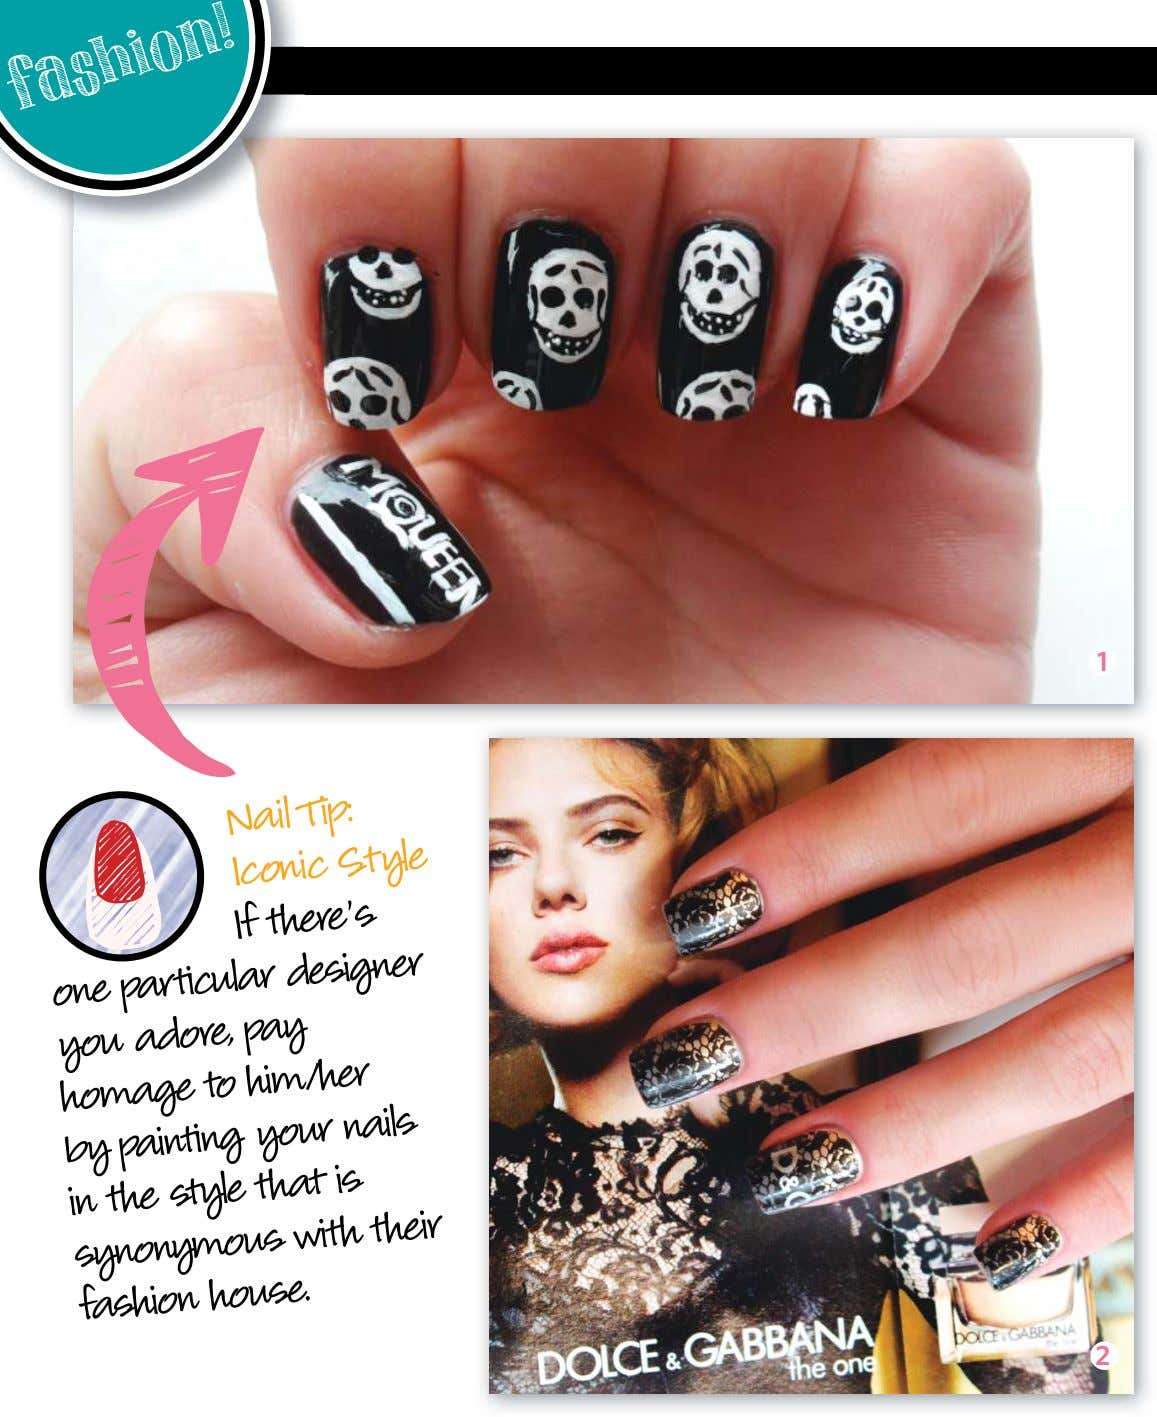 fashion ! 1 Nail Tip: Iconic Style there's one particular designer you adore, homage to